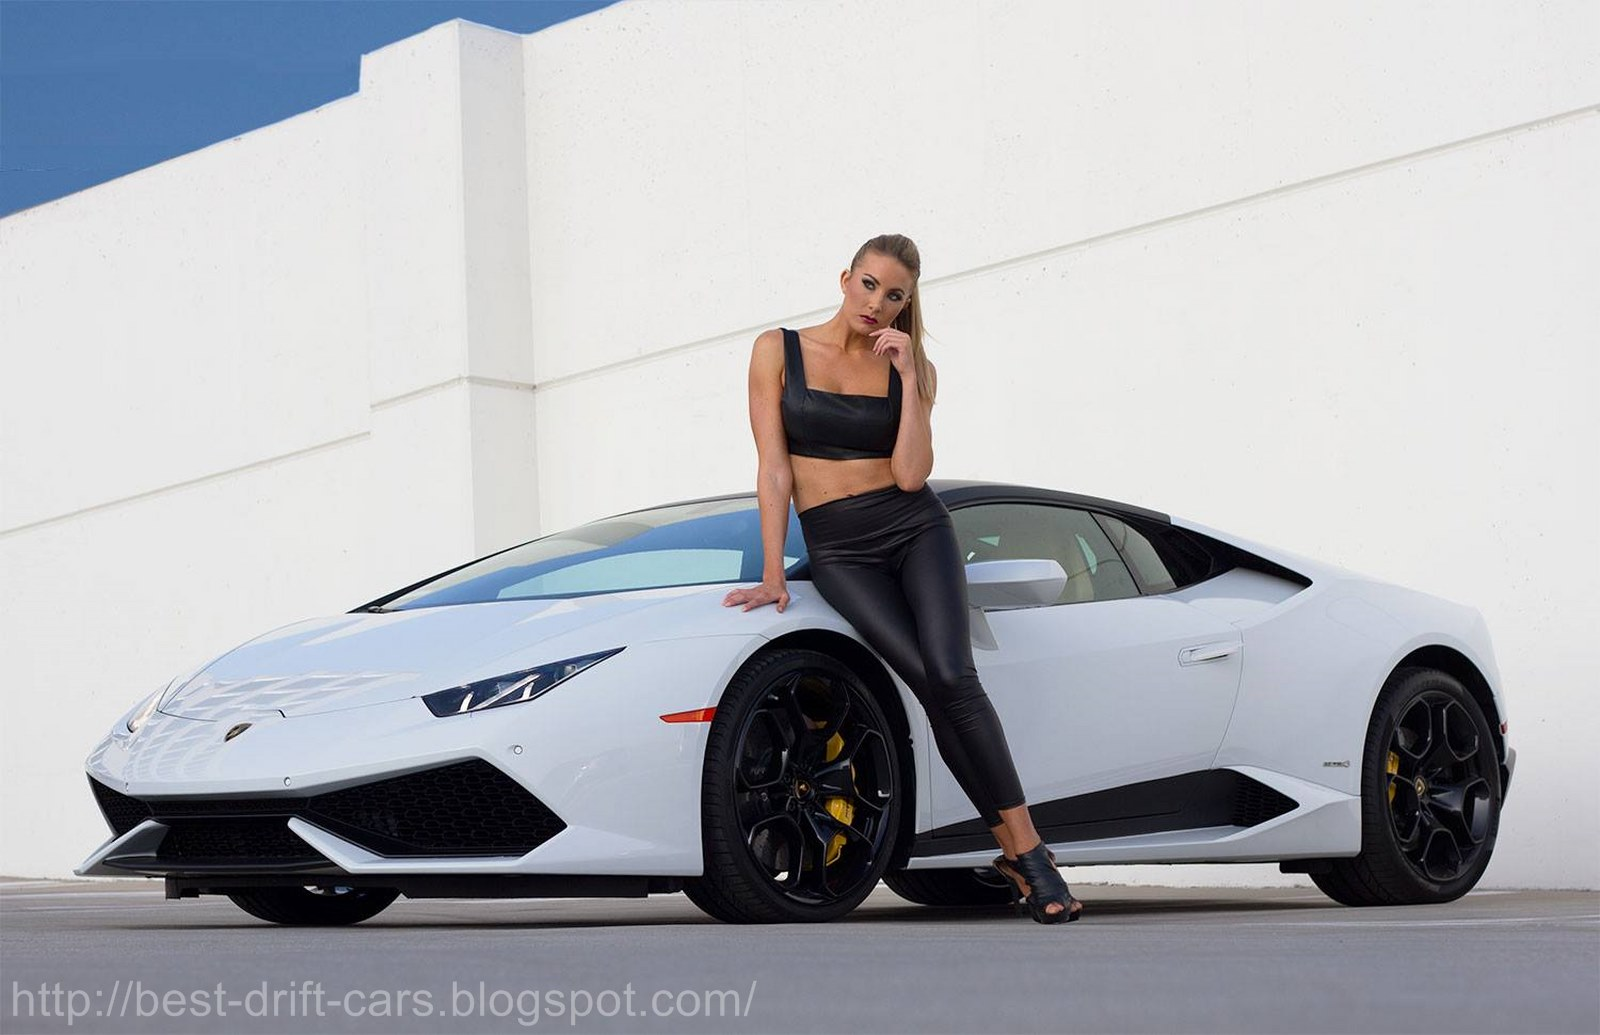 Photograph Girls And White Lamborghini Huracan Best Drift Cars